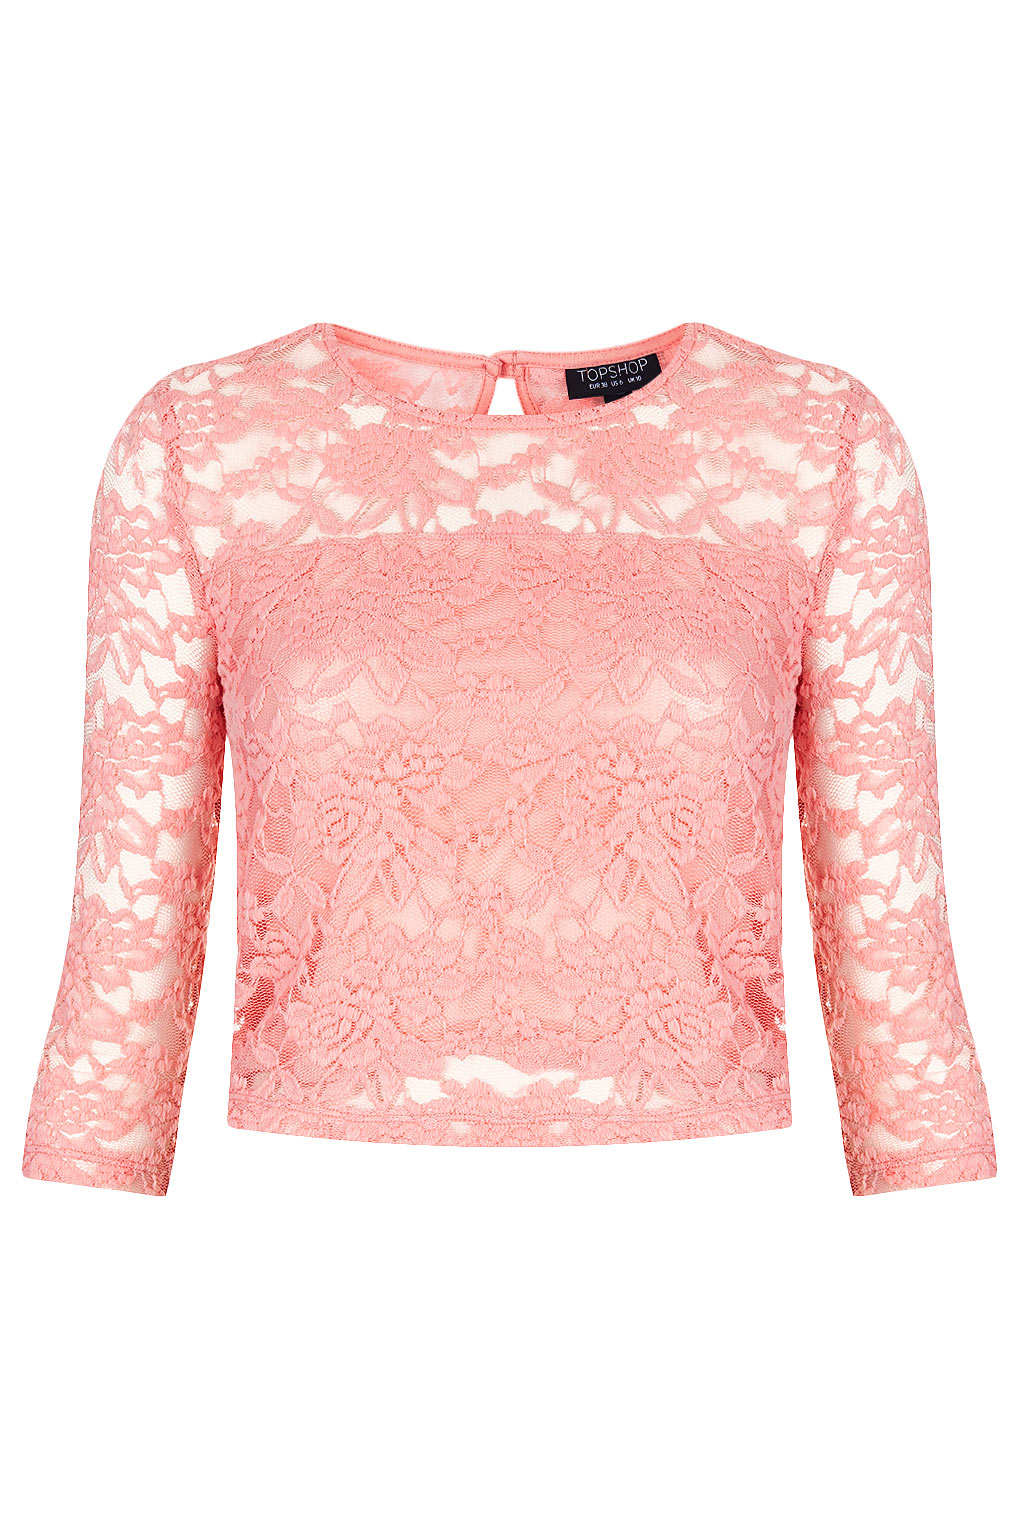 Topshop Sleeve Floral Lace Top in Pink | Lyst